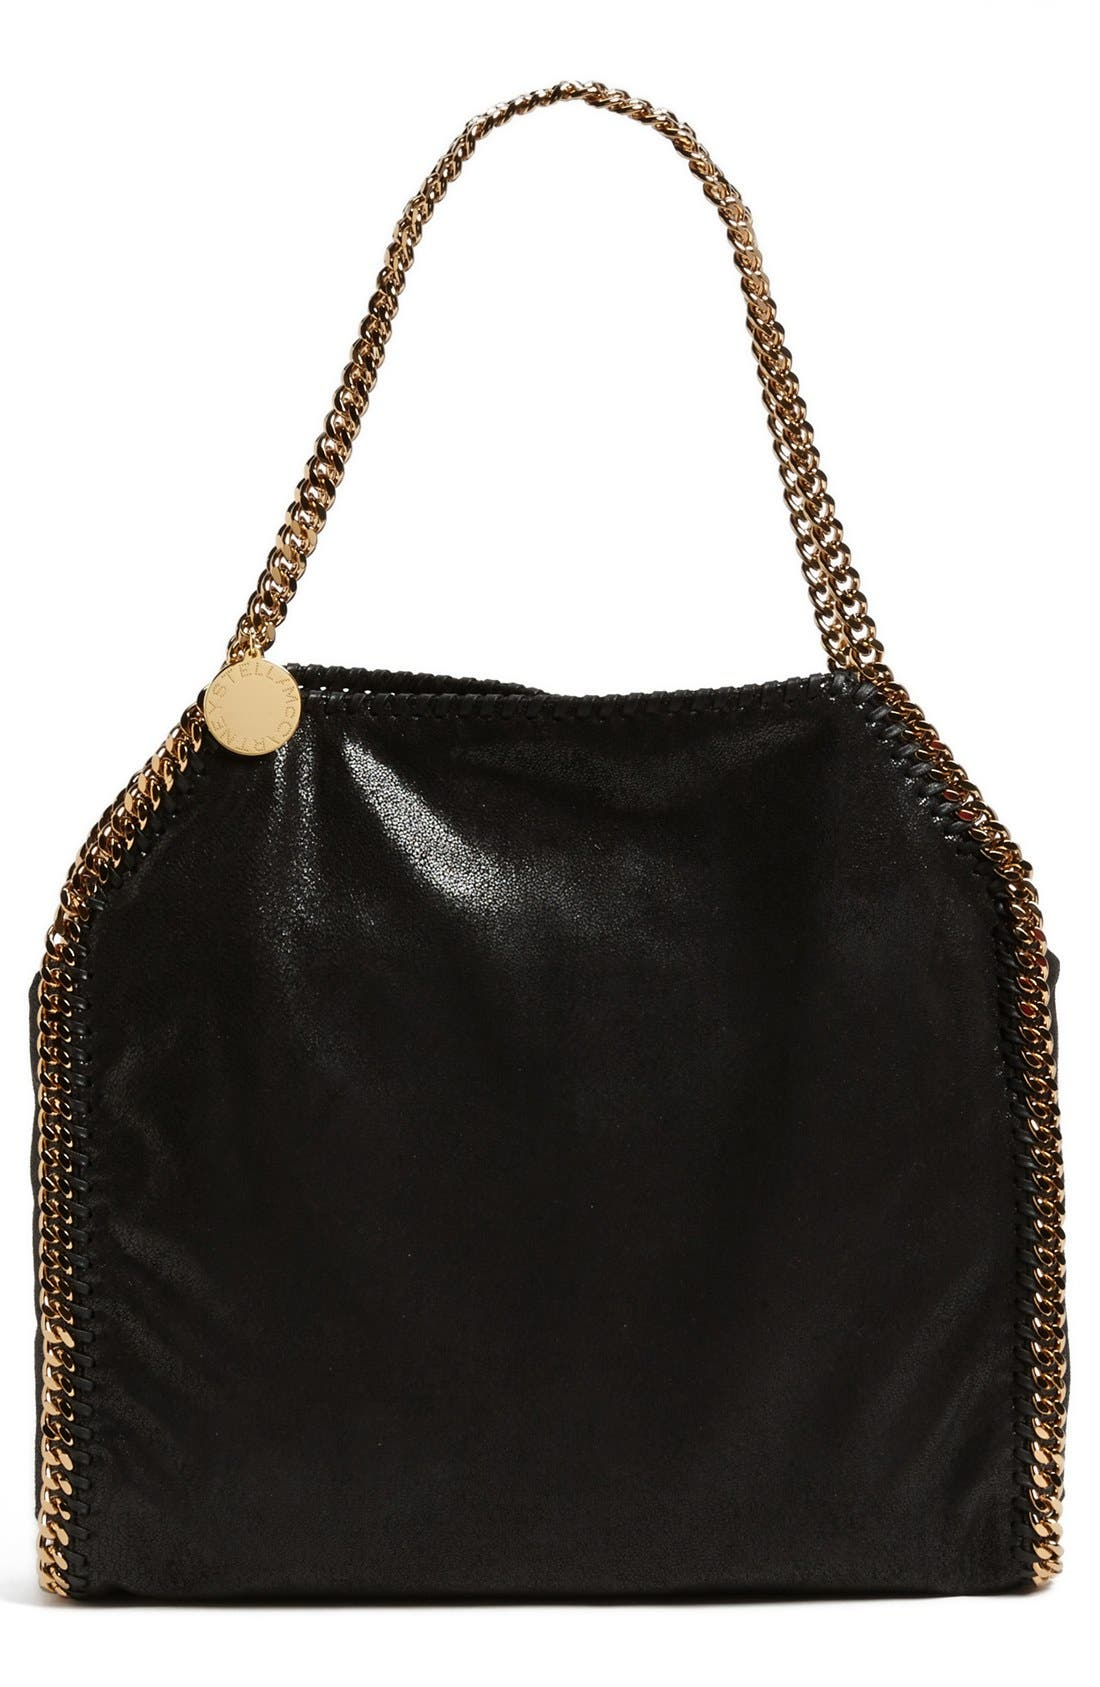 'Small Falabella - Shaggy Deer' Faux Leather Tote,                         Main,                         color, Black